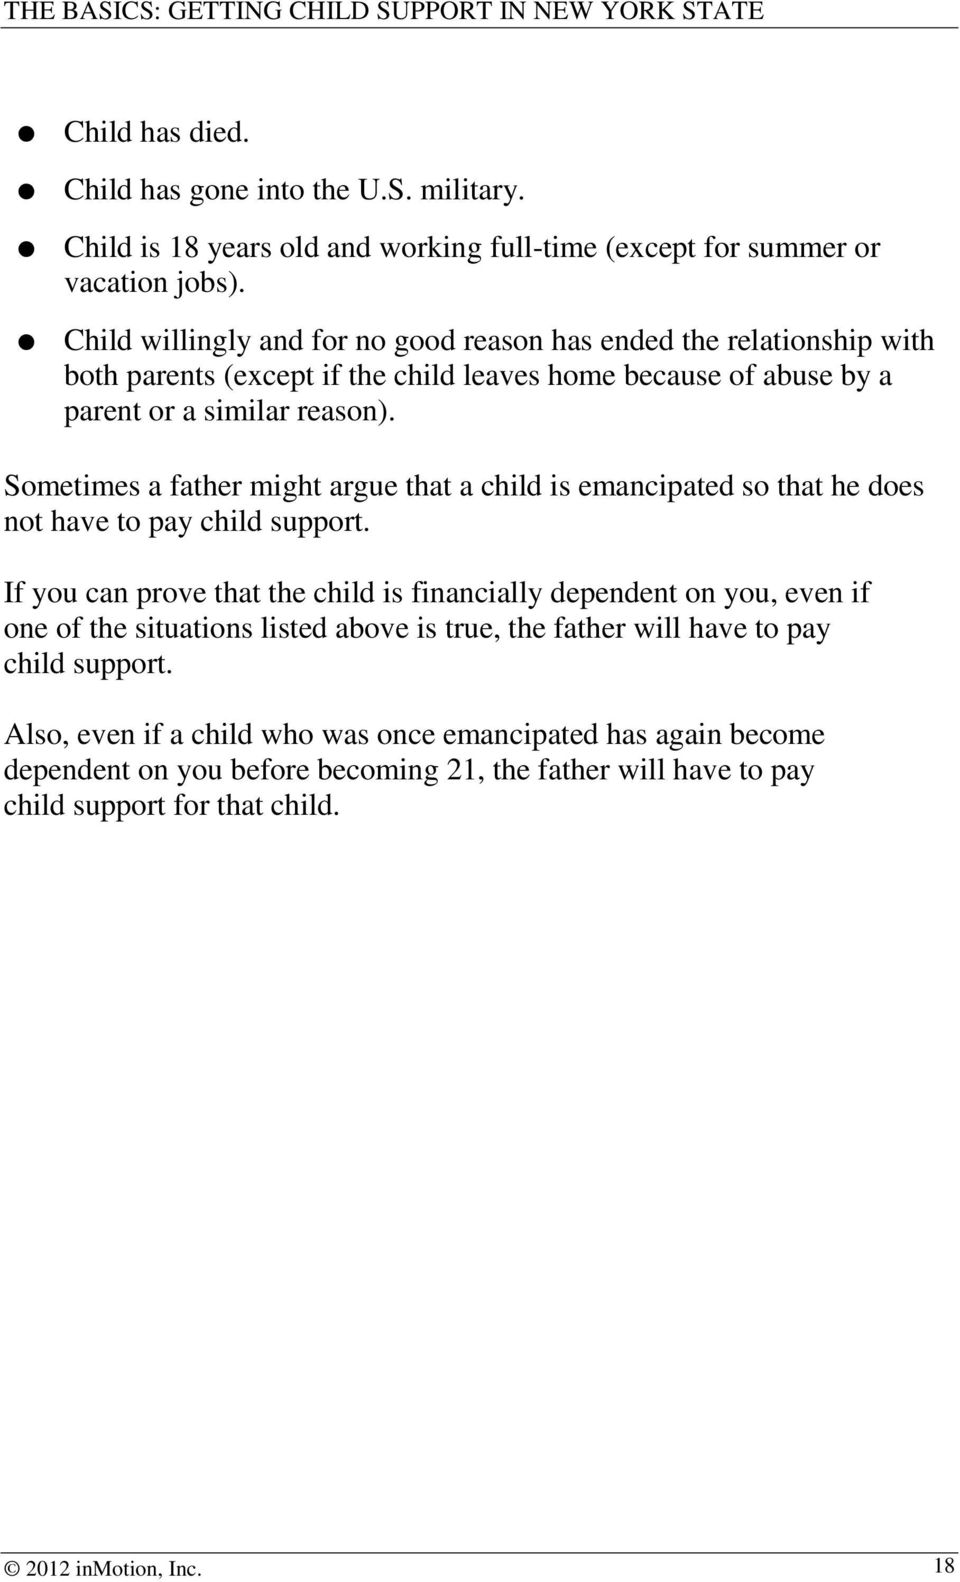 Sometimes a father might argue that a child is emancipated so that he does not have to pay child support.